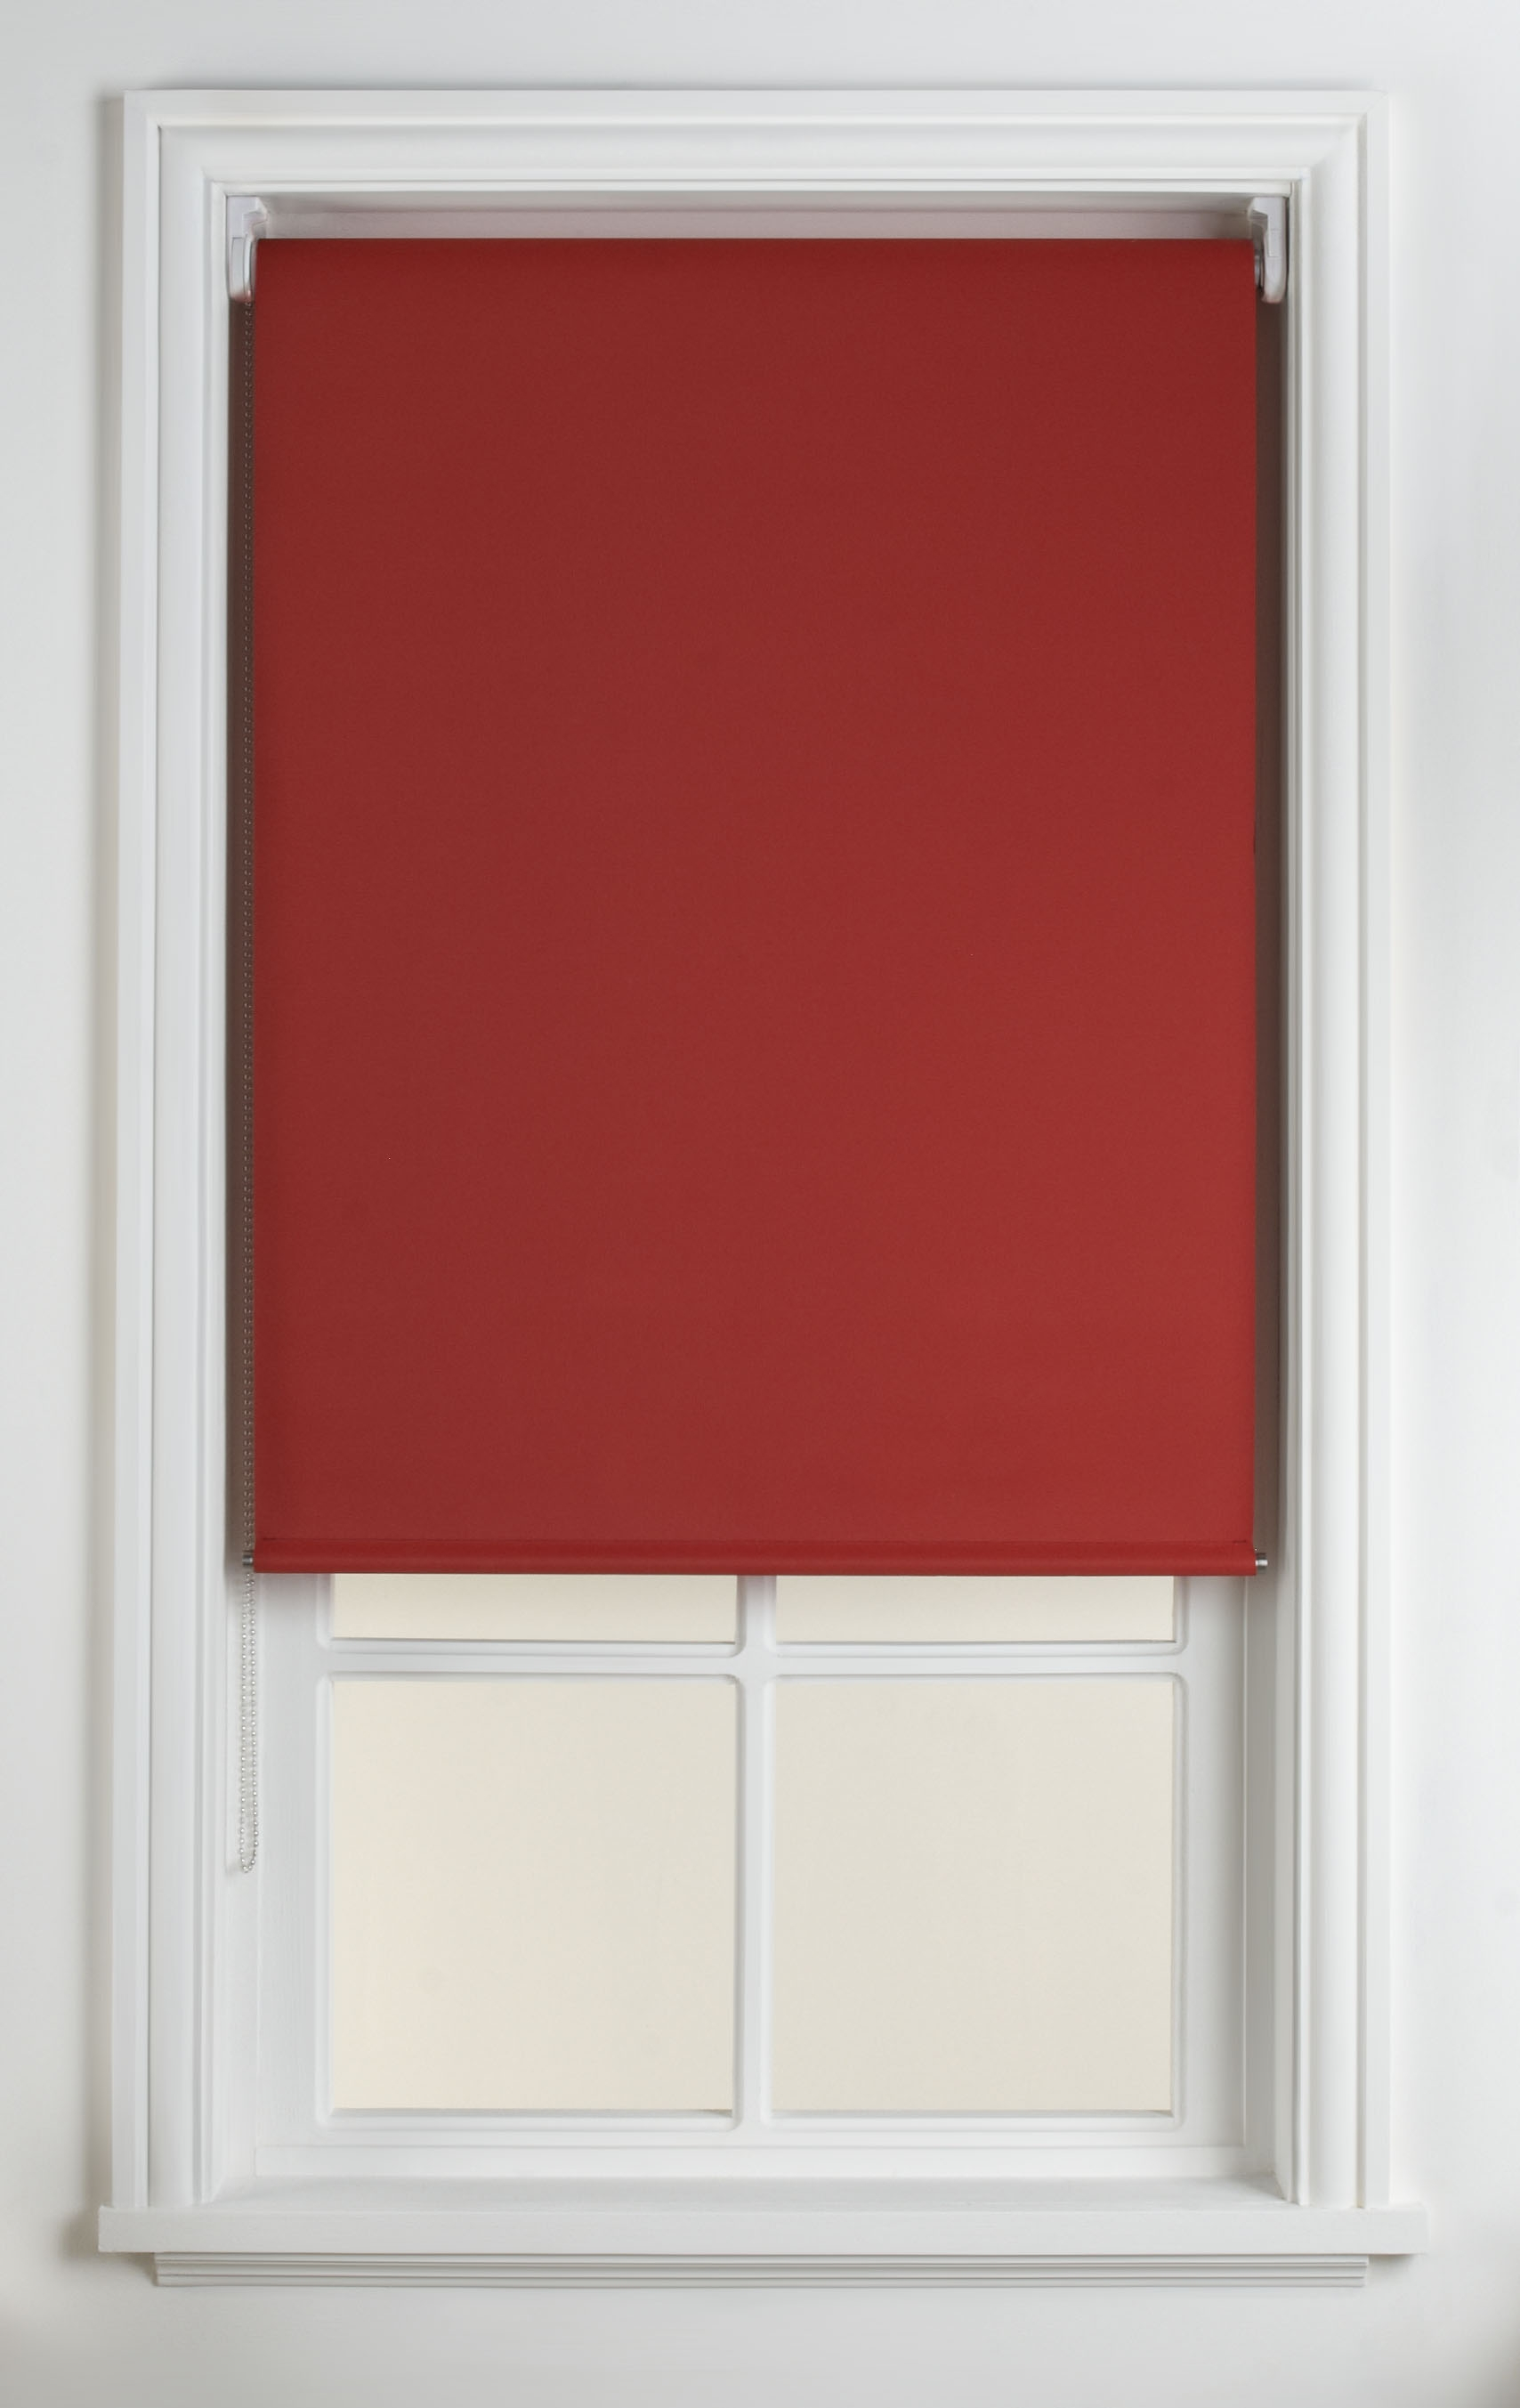 Blackout Blinds Statement Collection Integra Products Within Reverse Roller Blinds (View 6 of 15)